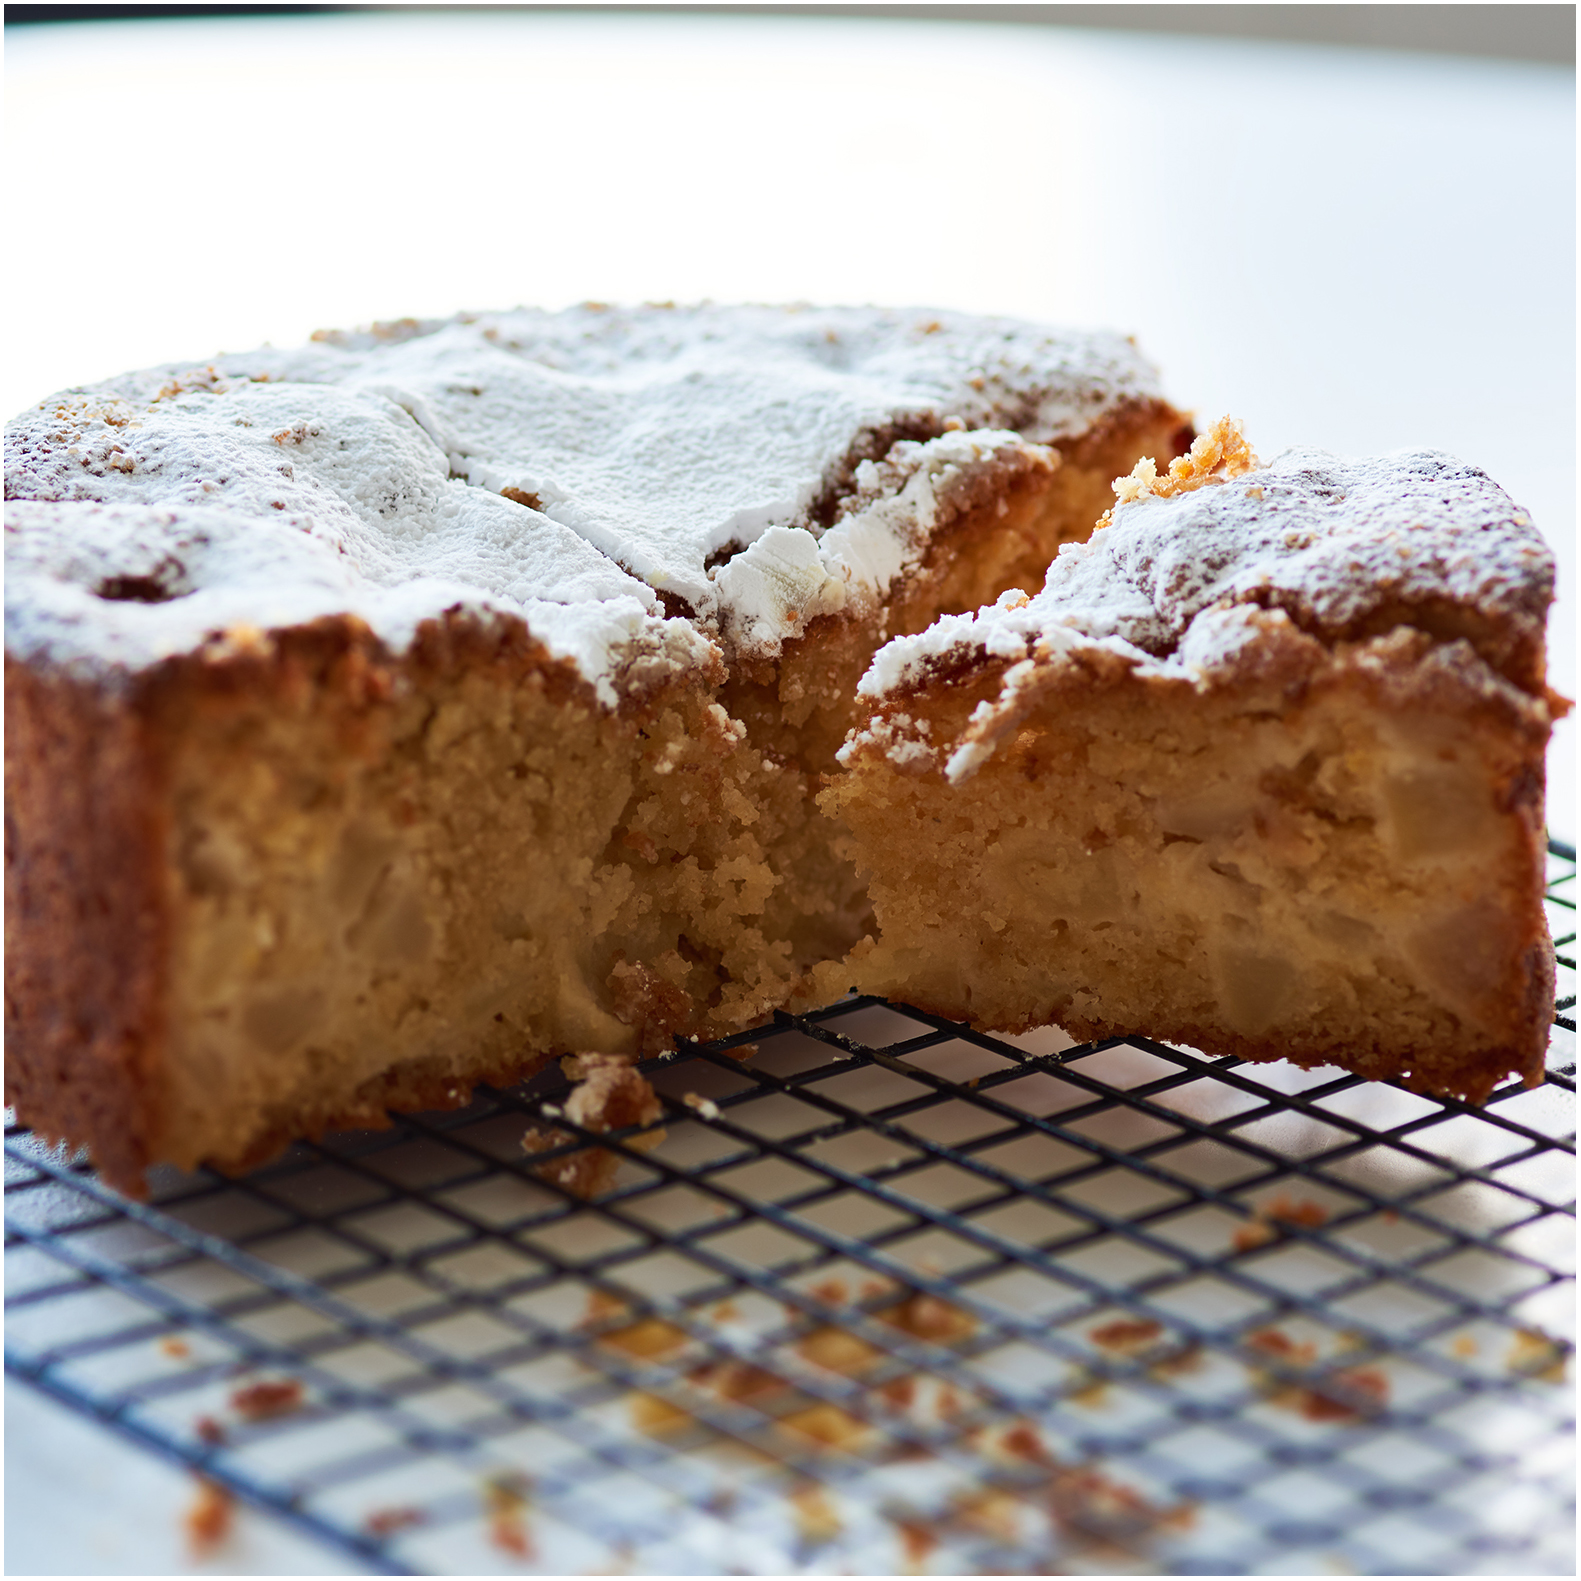 Crumbly, light, super-sweet, and delicious!